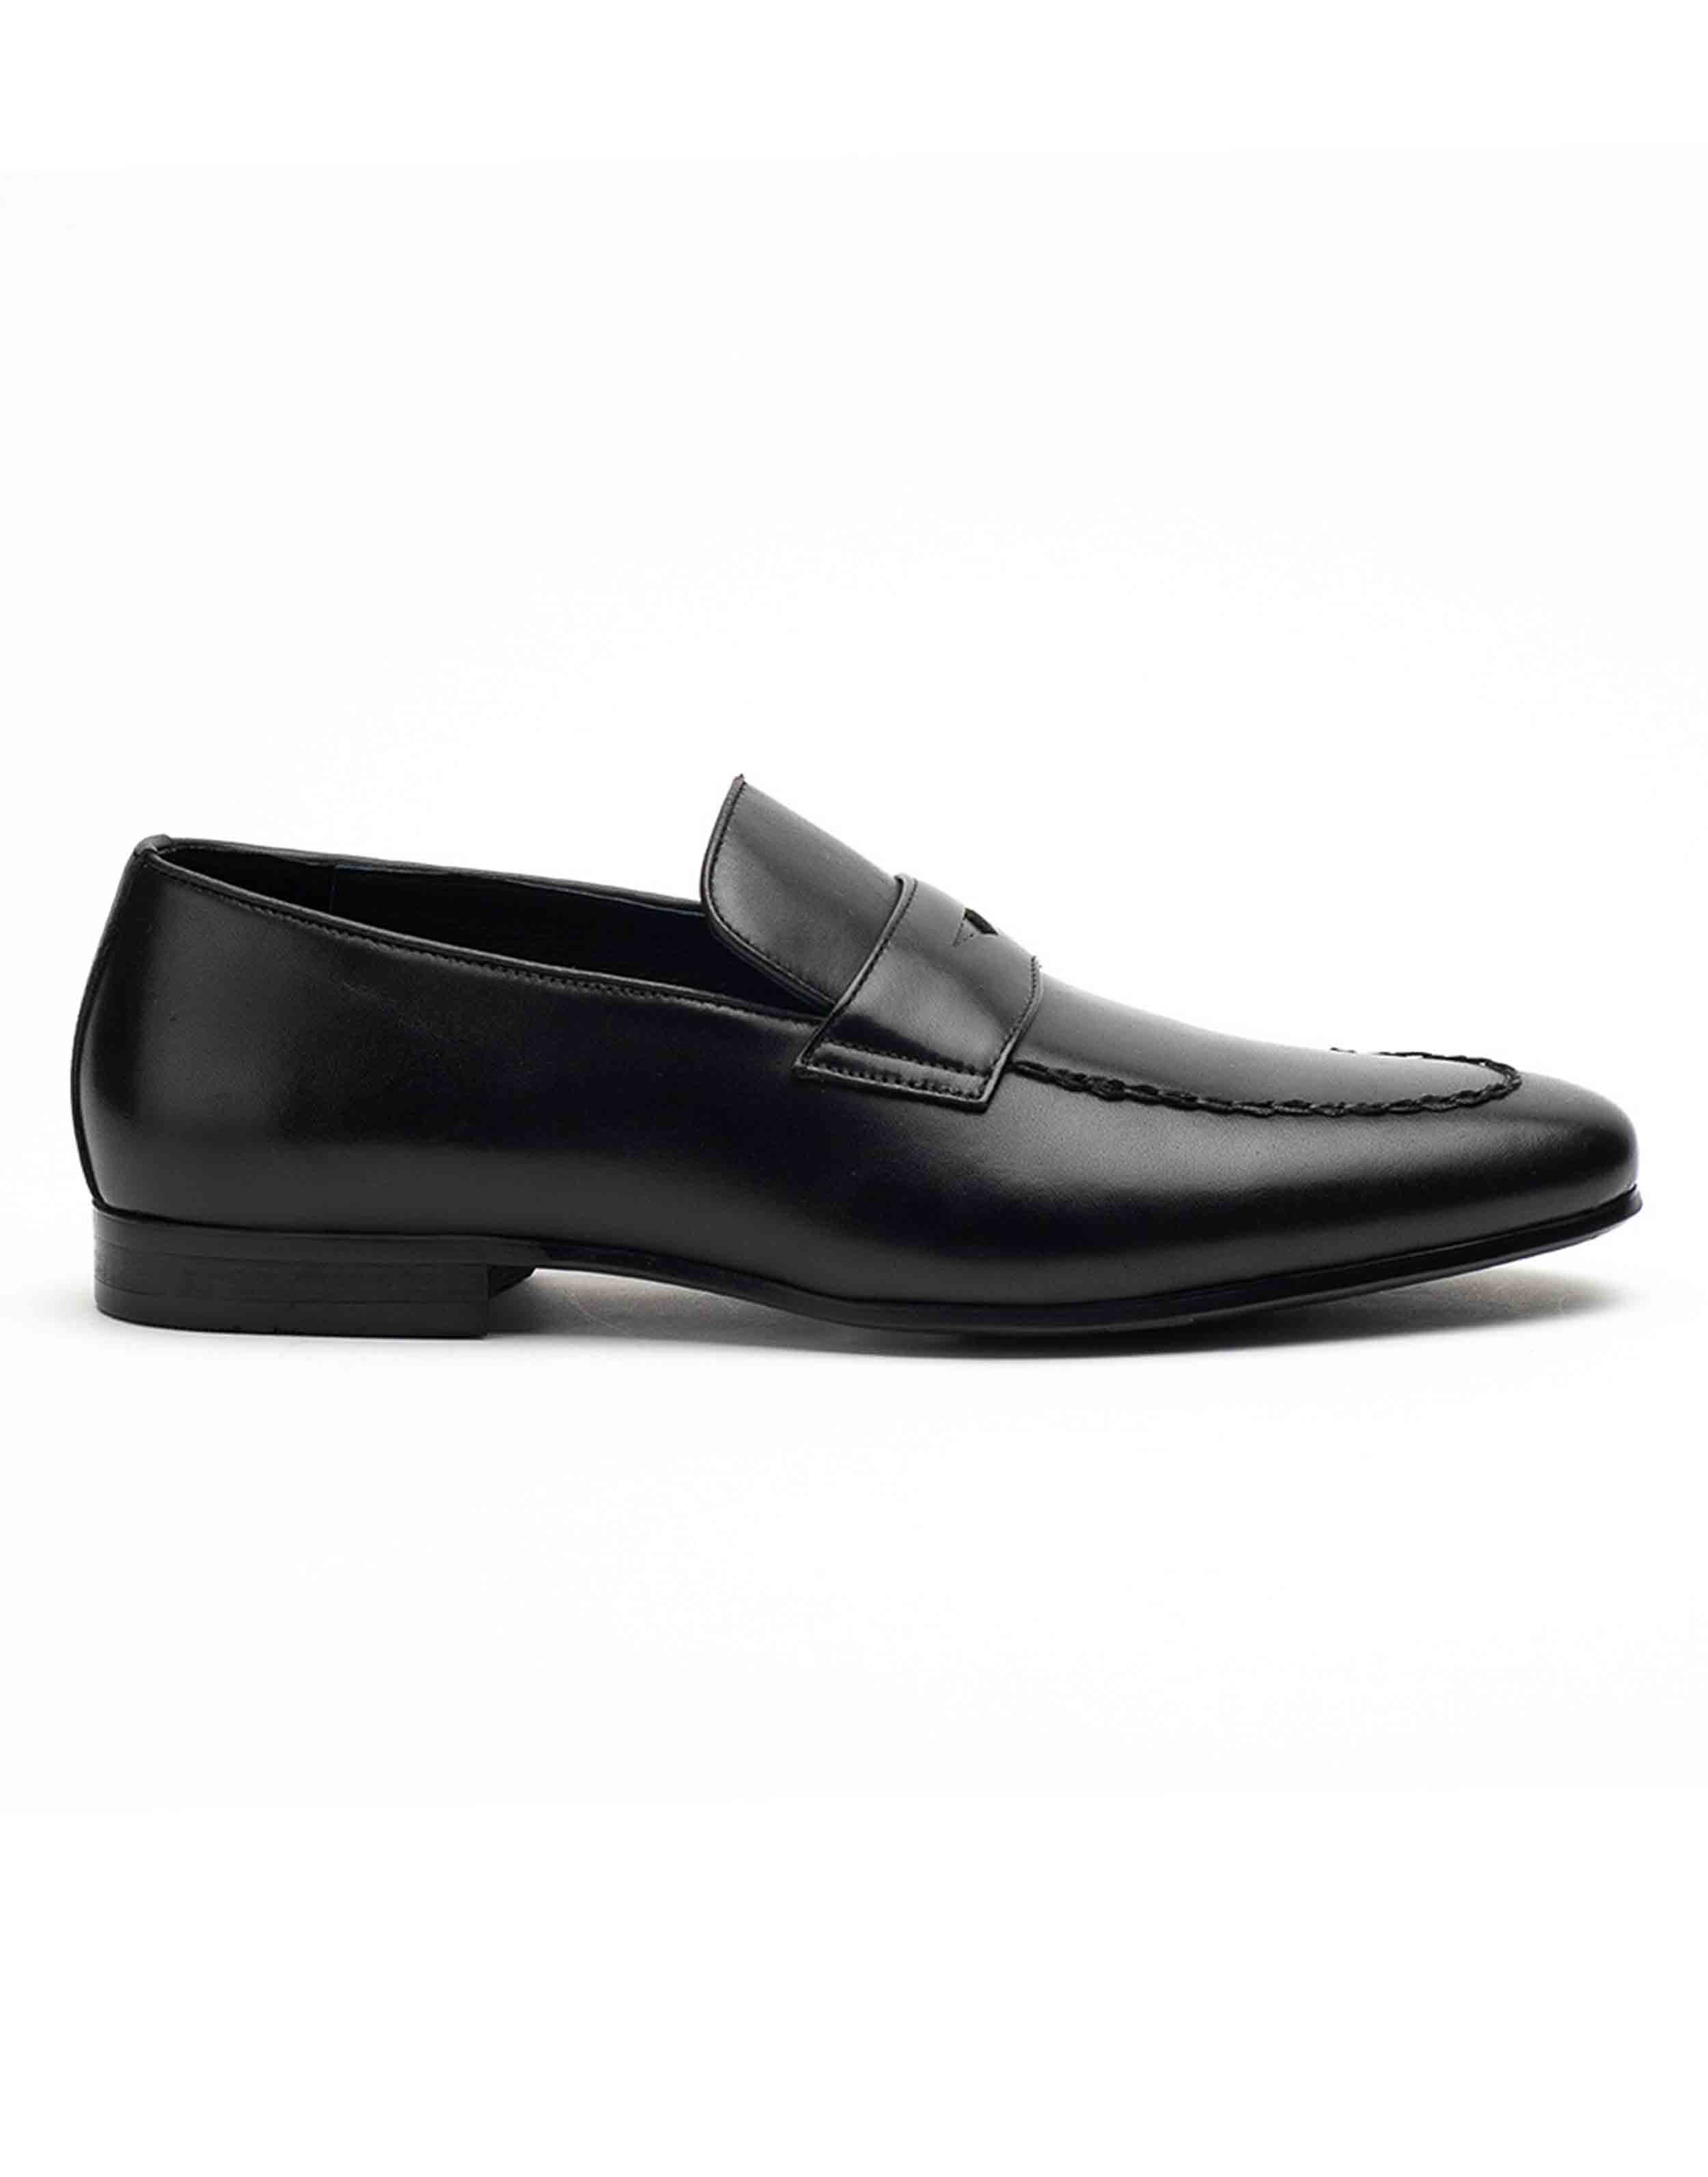 Heel _ Buckle London-HBDARM094-Diverse Black Penny Loafers-1